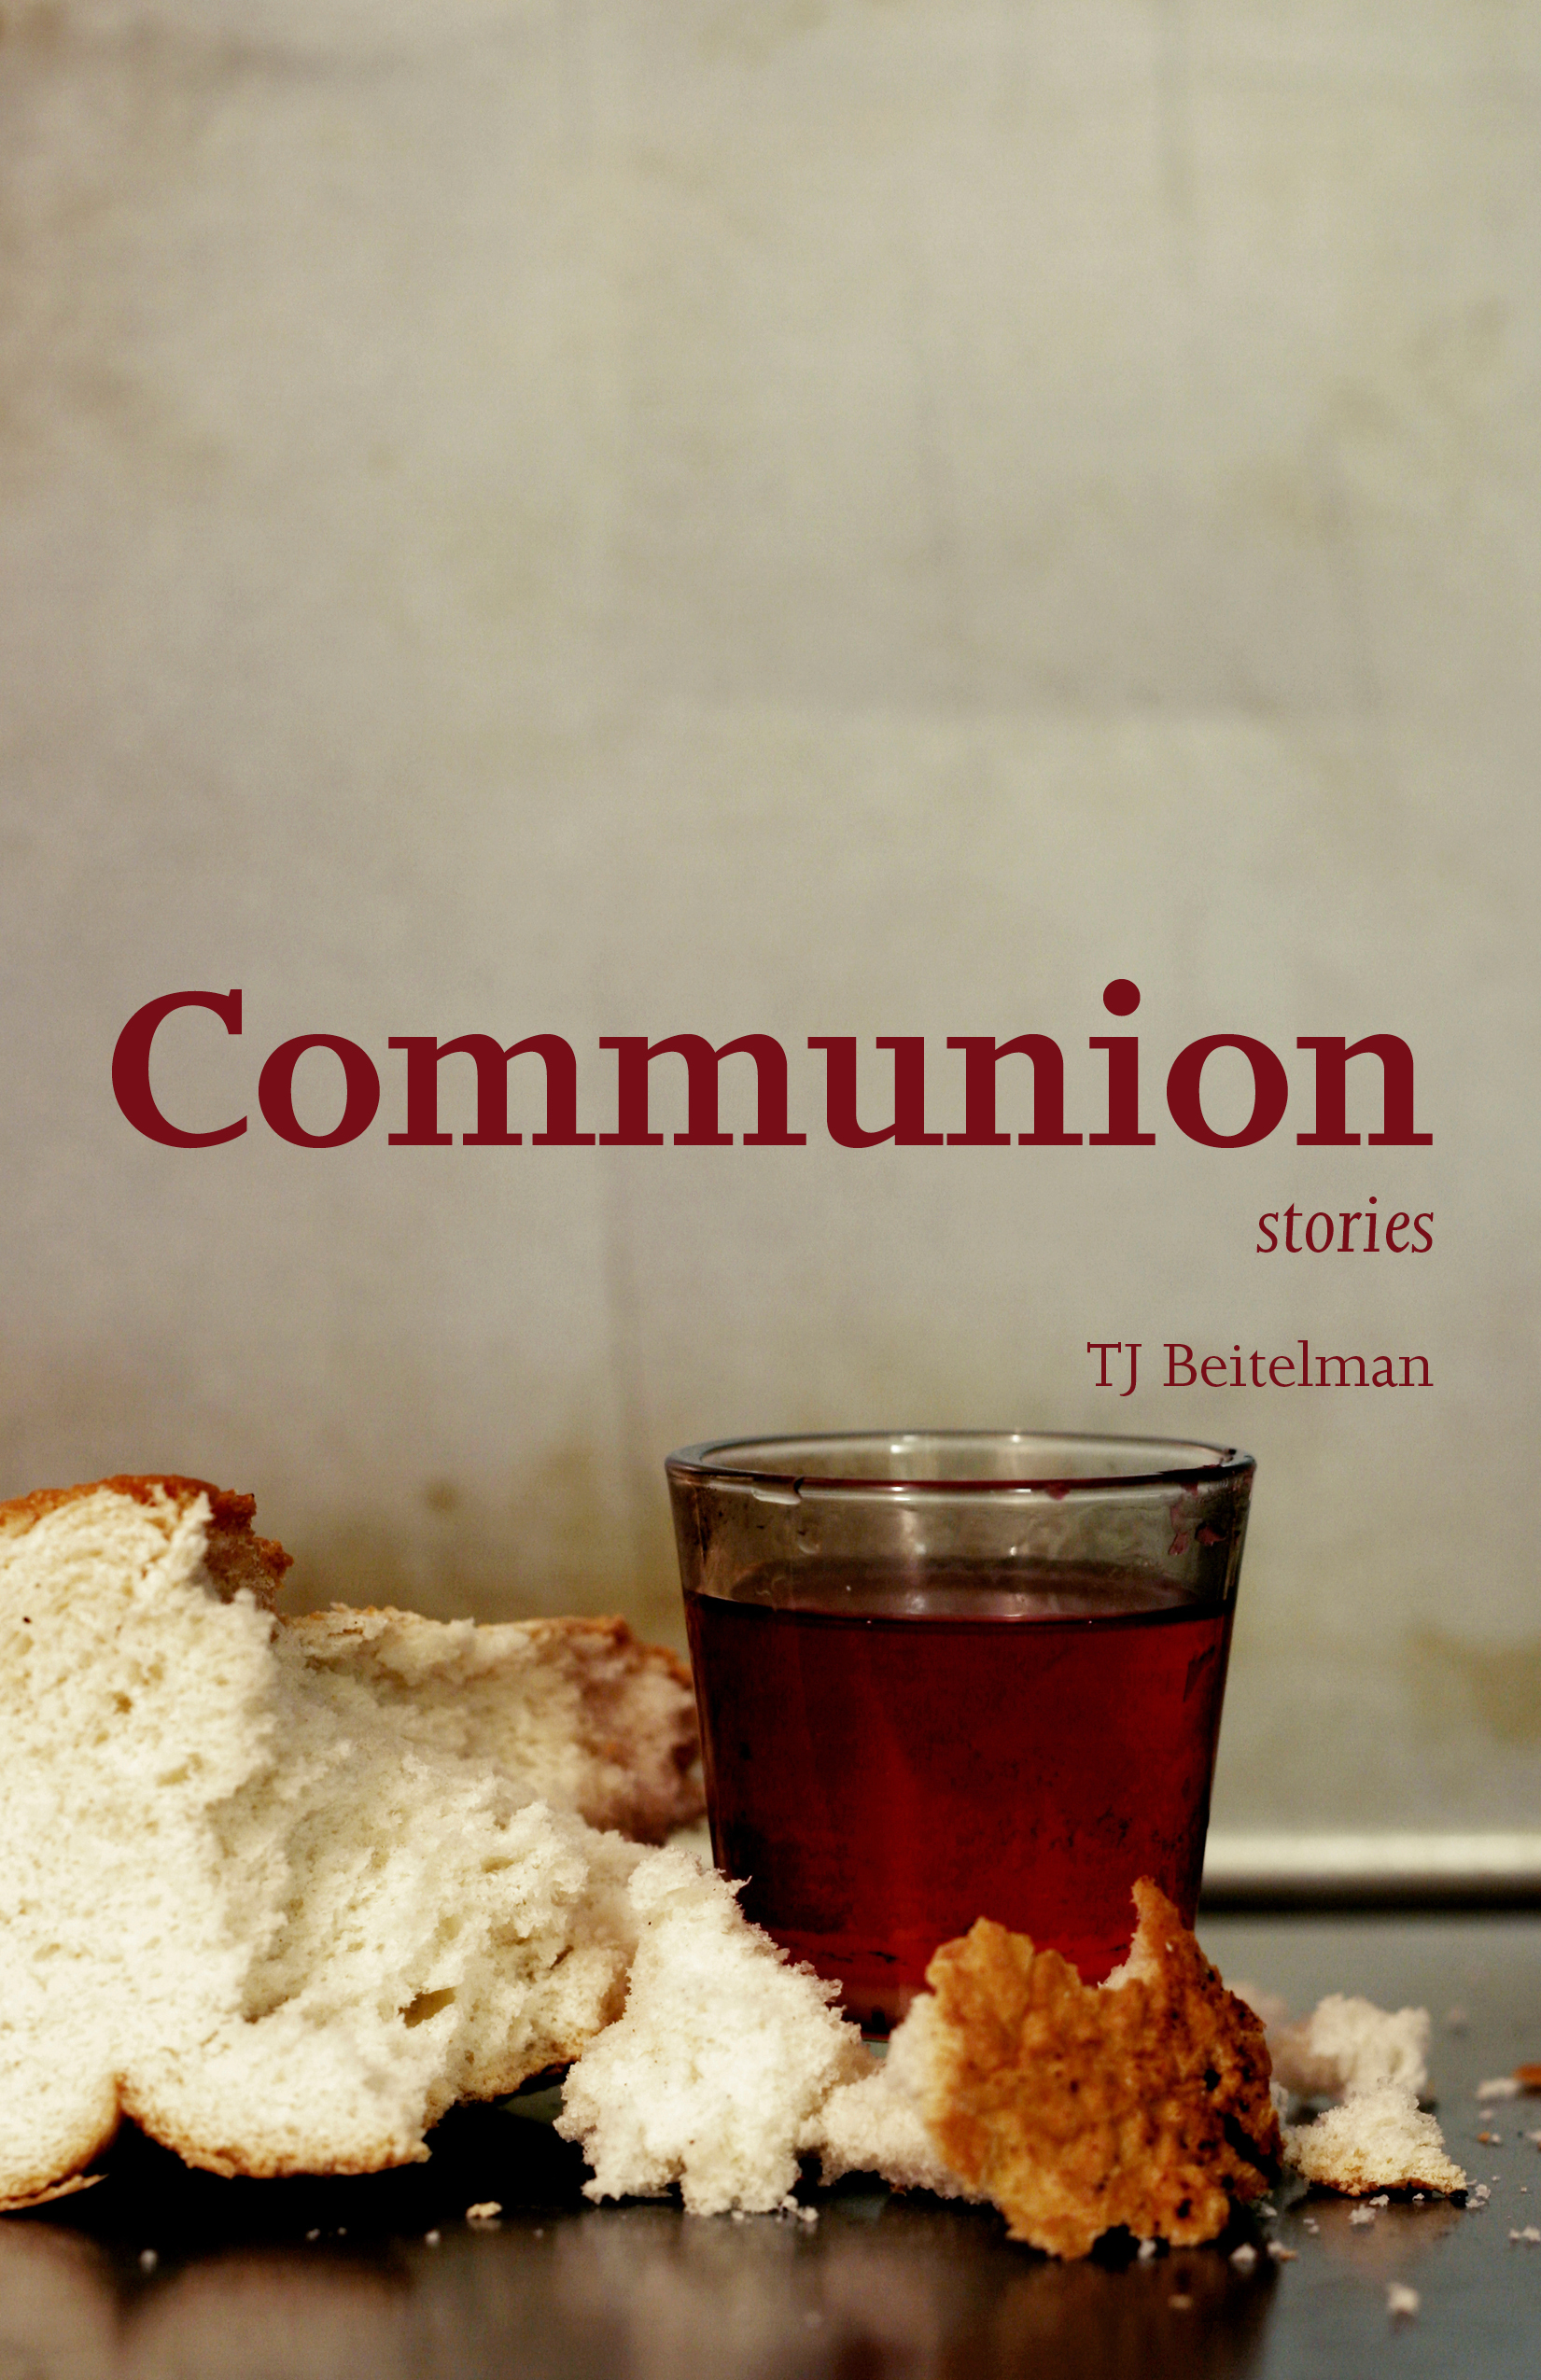 Communion: Stories